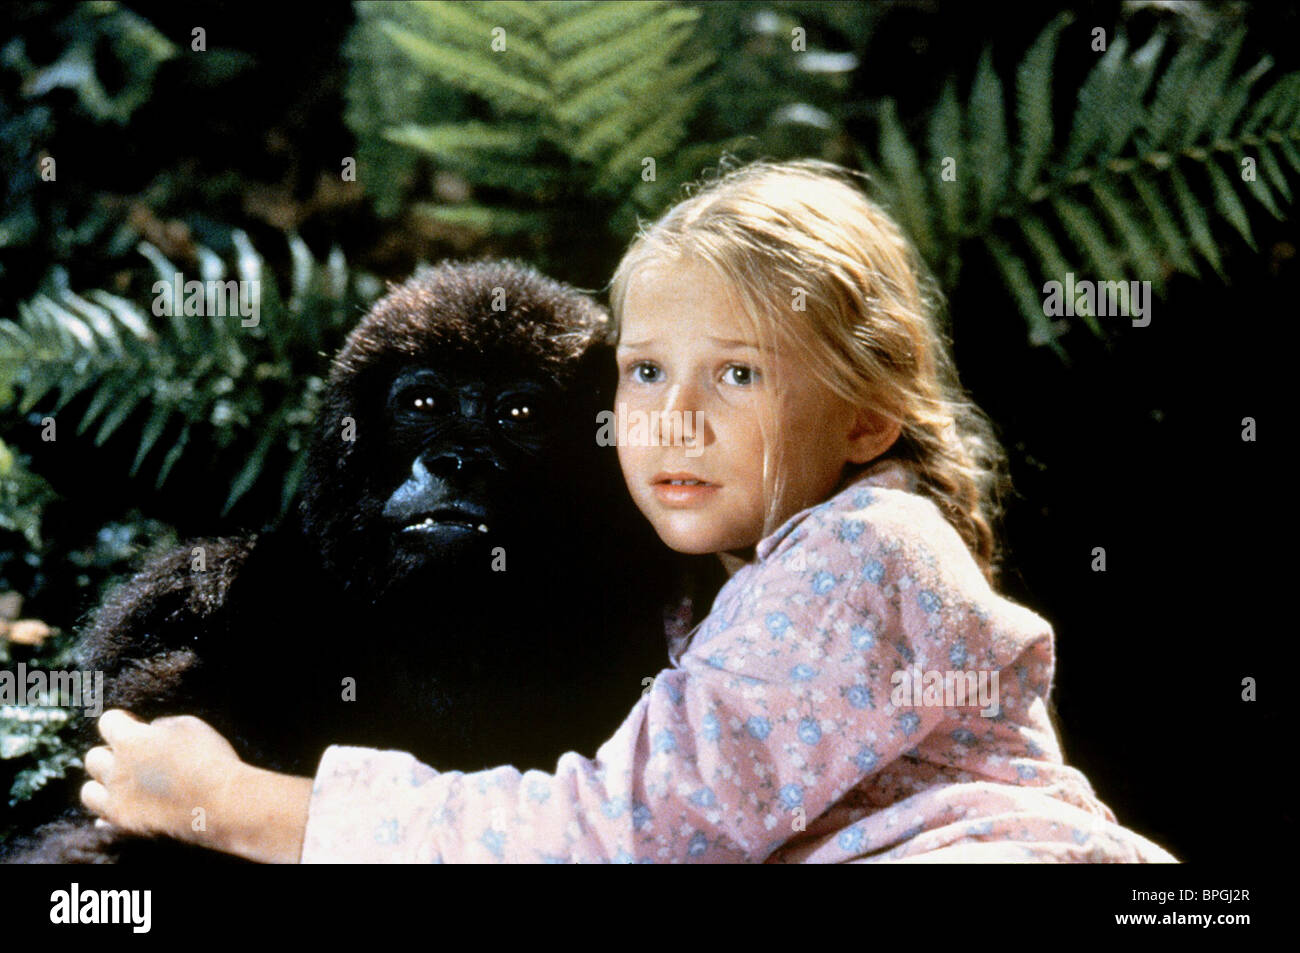 gorilla amp mika boorem mighty joe young 1998 stock photo